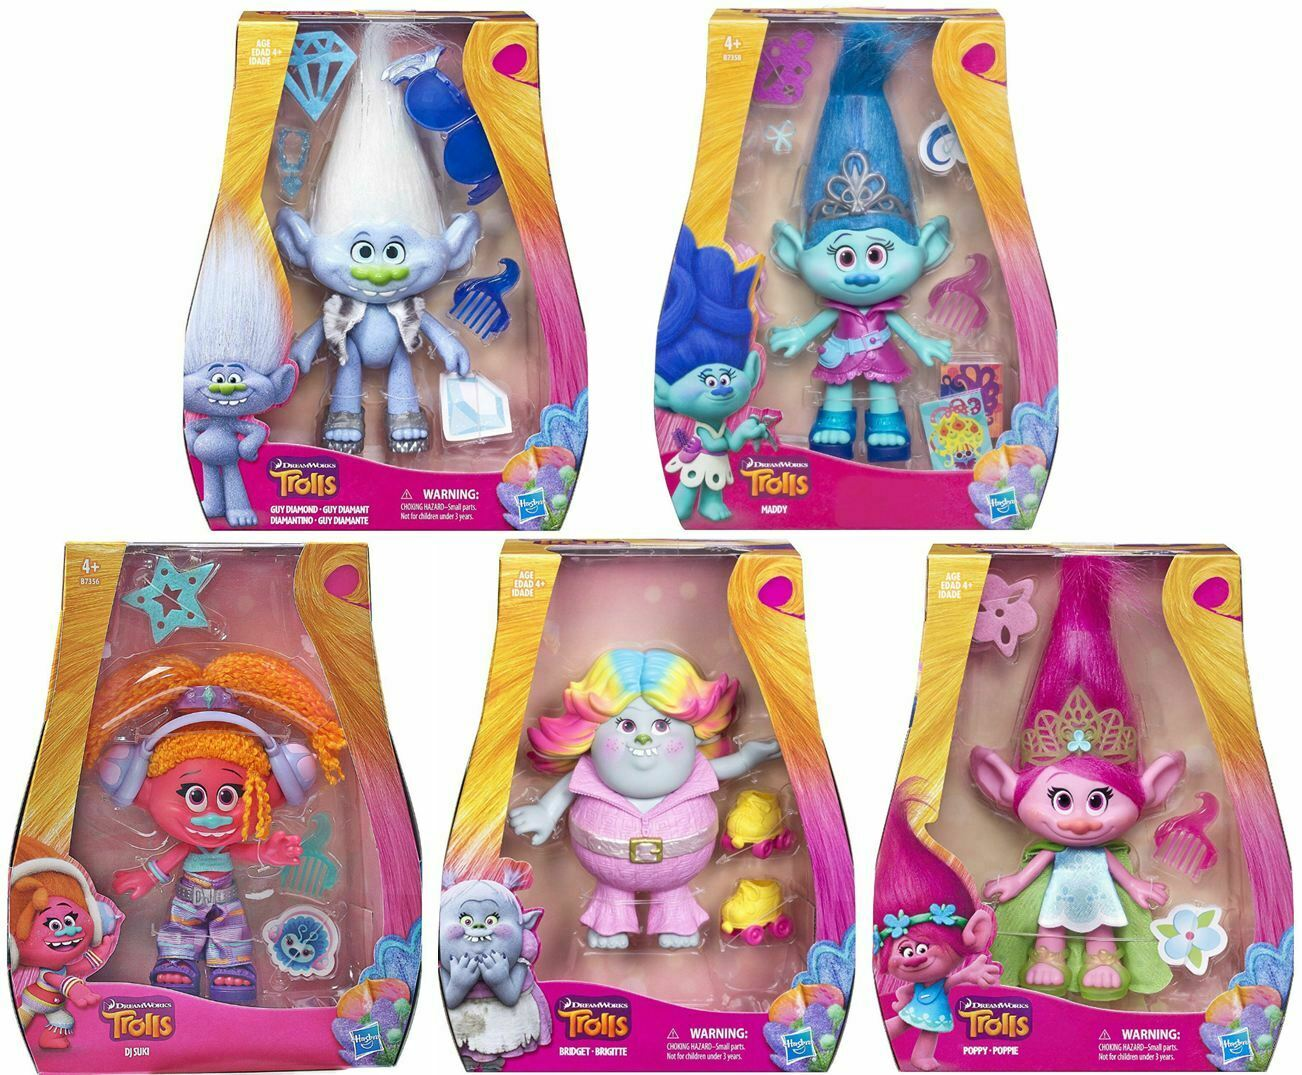 Trolls 9  Hasbro Dolls - Choose Choose Choose Poppy, Maddy, DJ Suki, Bridget or Guy Diamond be3717